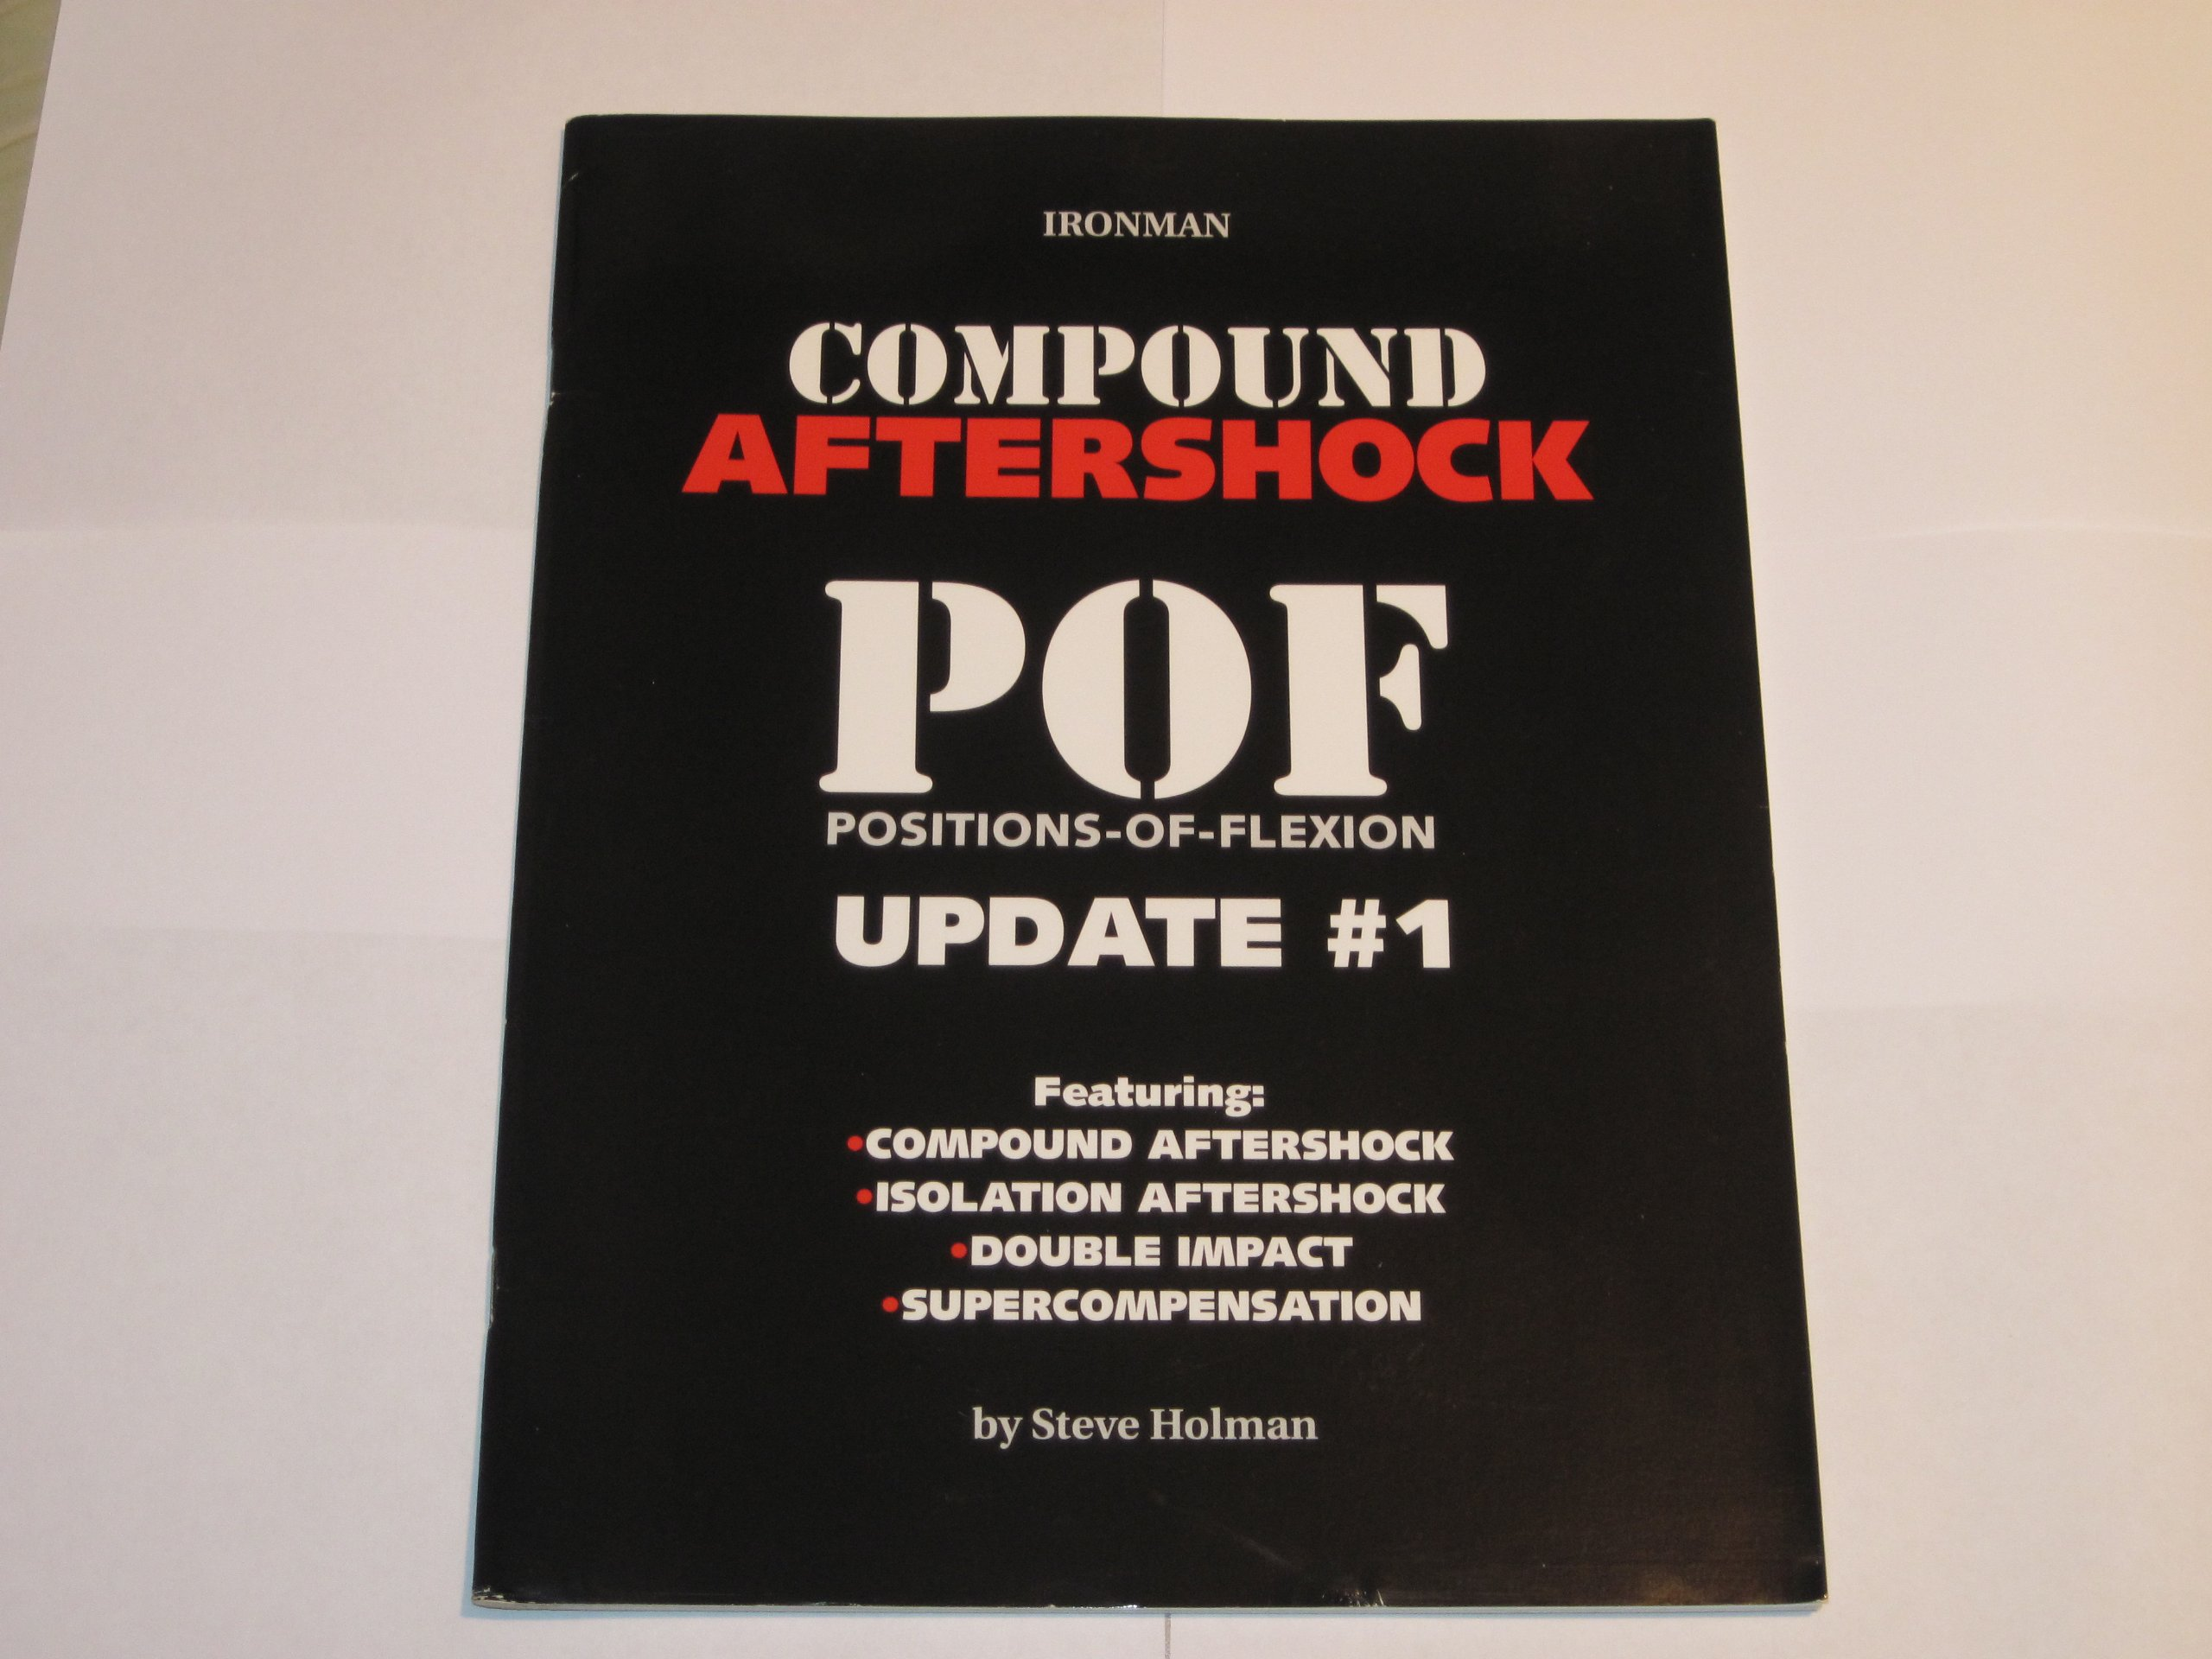 COMPOUND AFTERSHOCK POF (Positions -of-Flexion) UPDATE #1